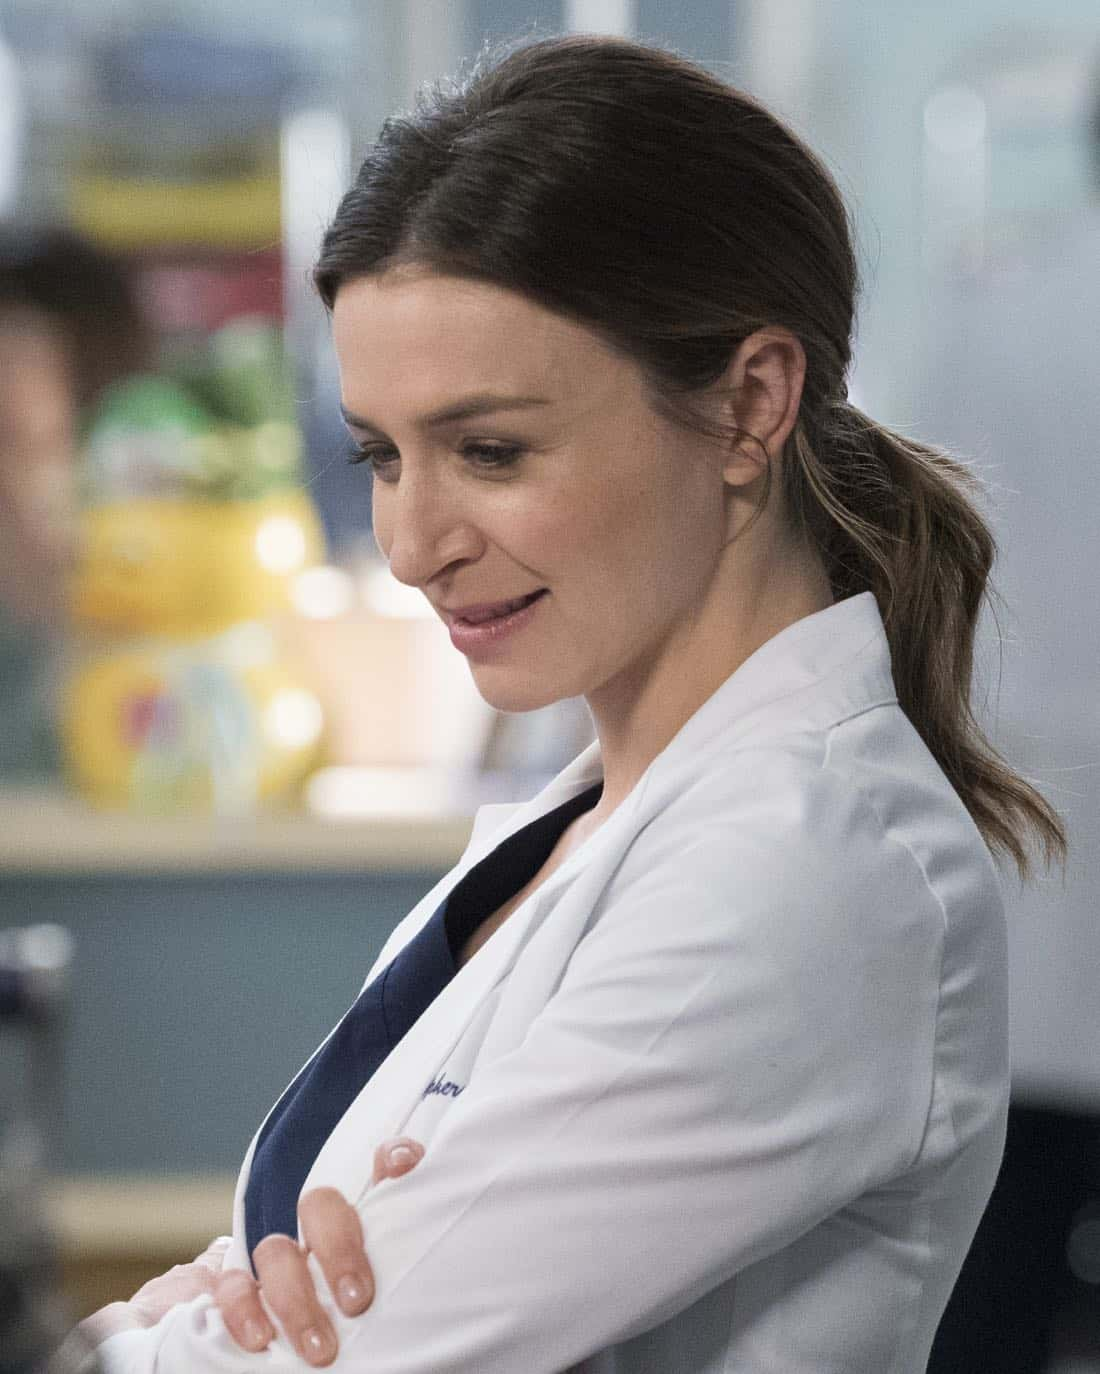 Greys Anatomy Episode 18 Season 14 Hold Back The River 11